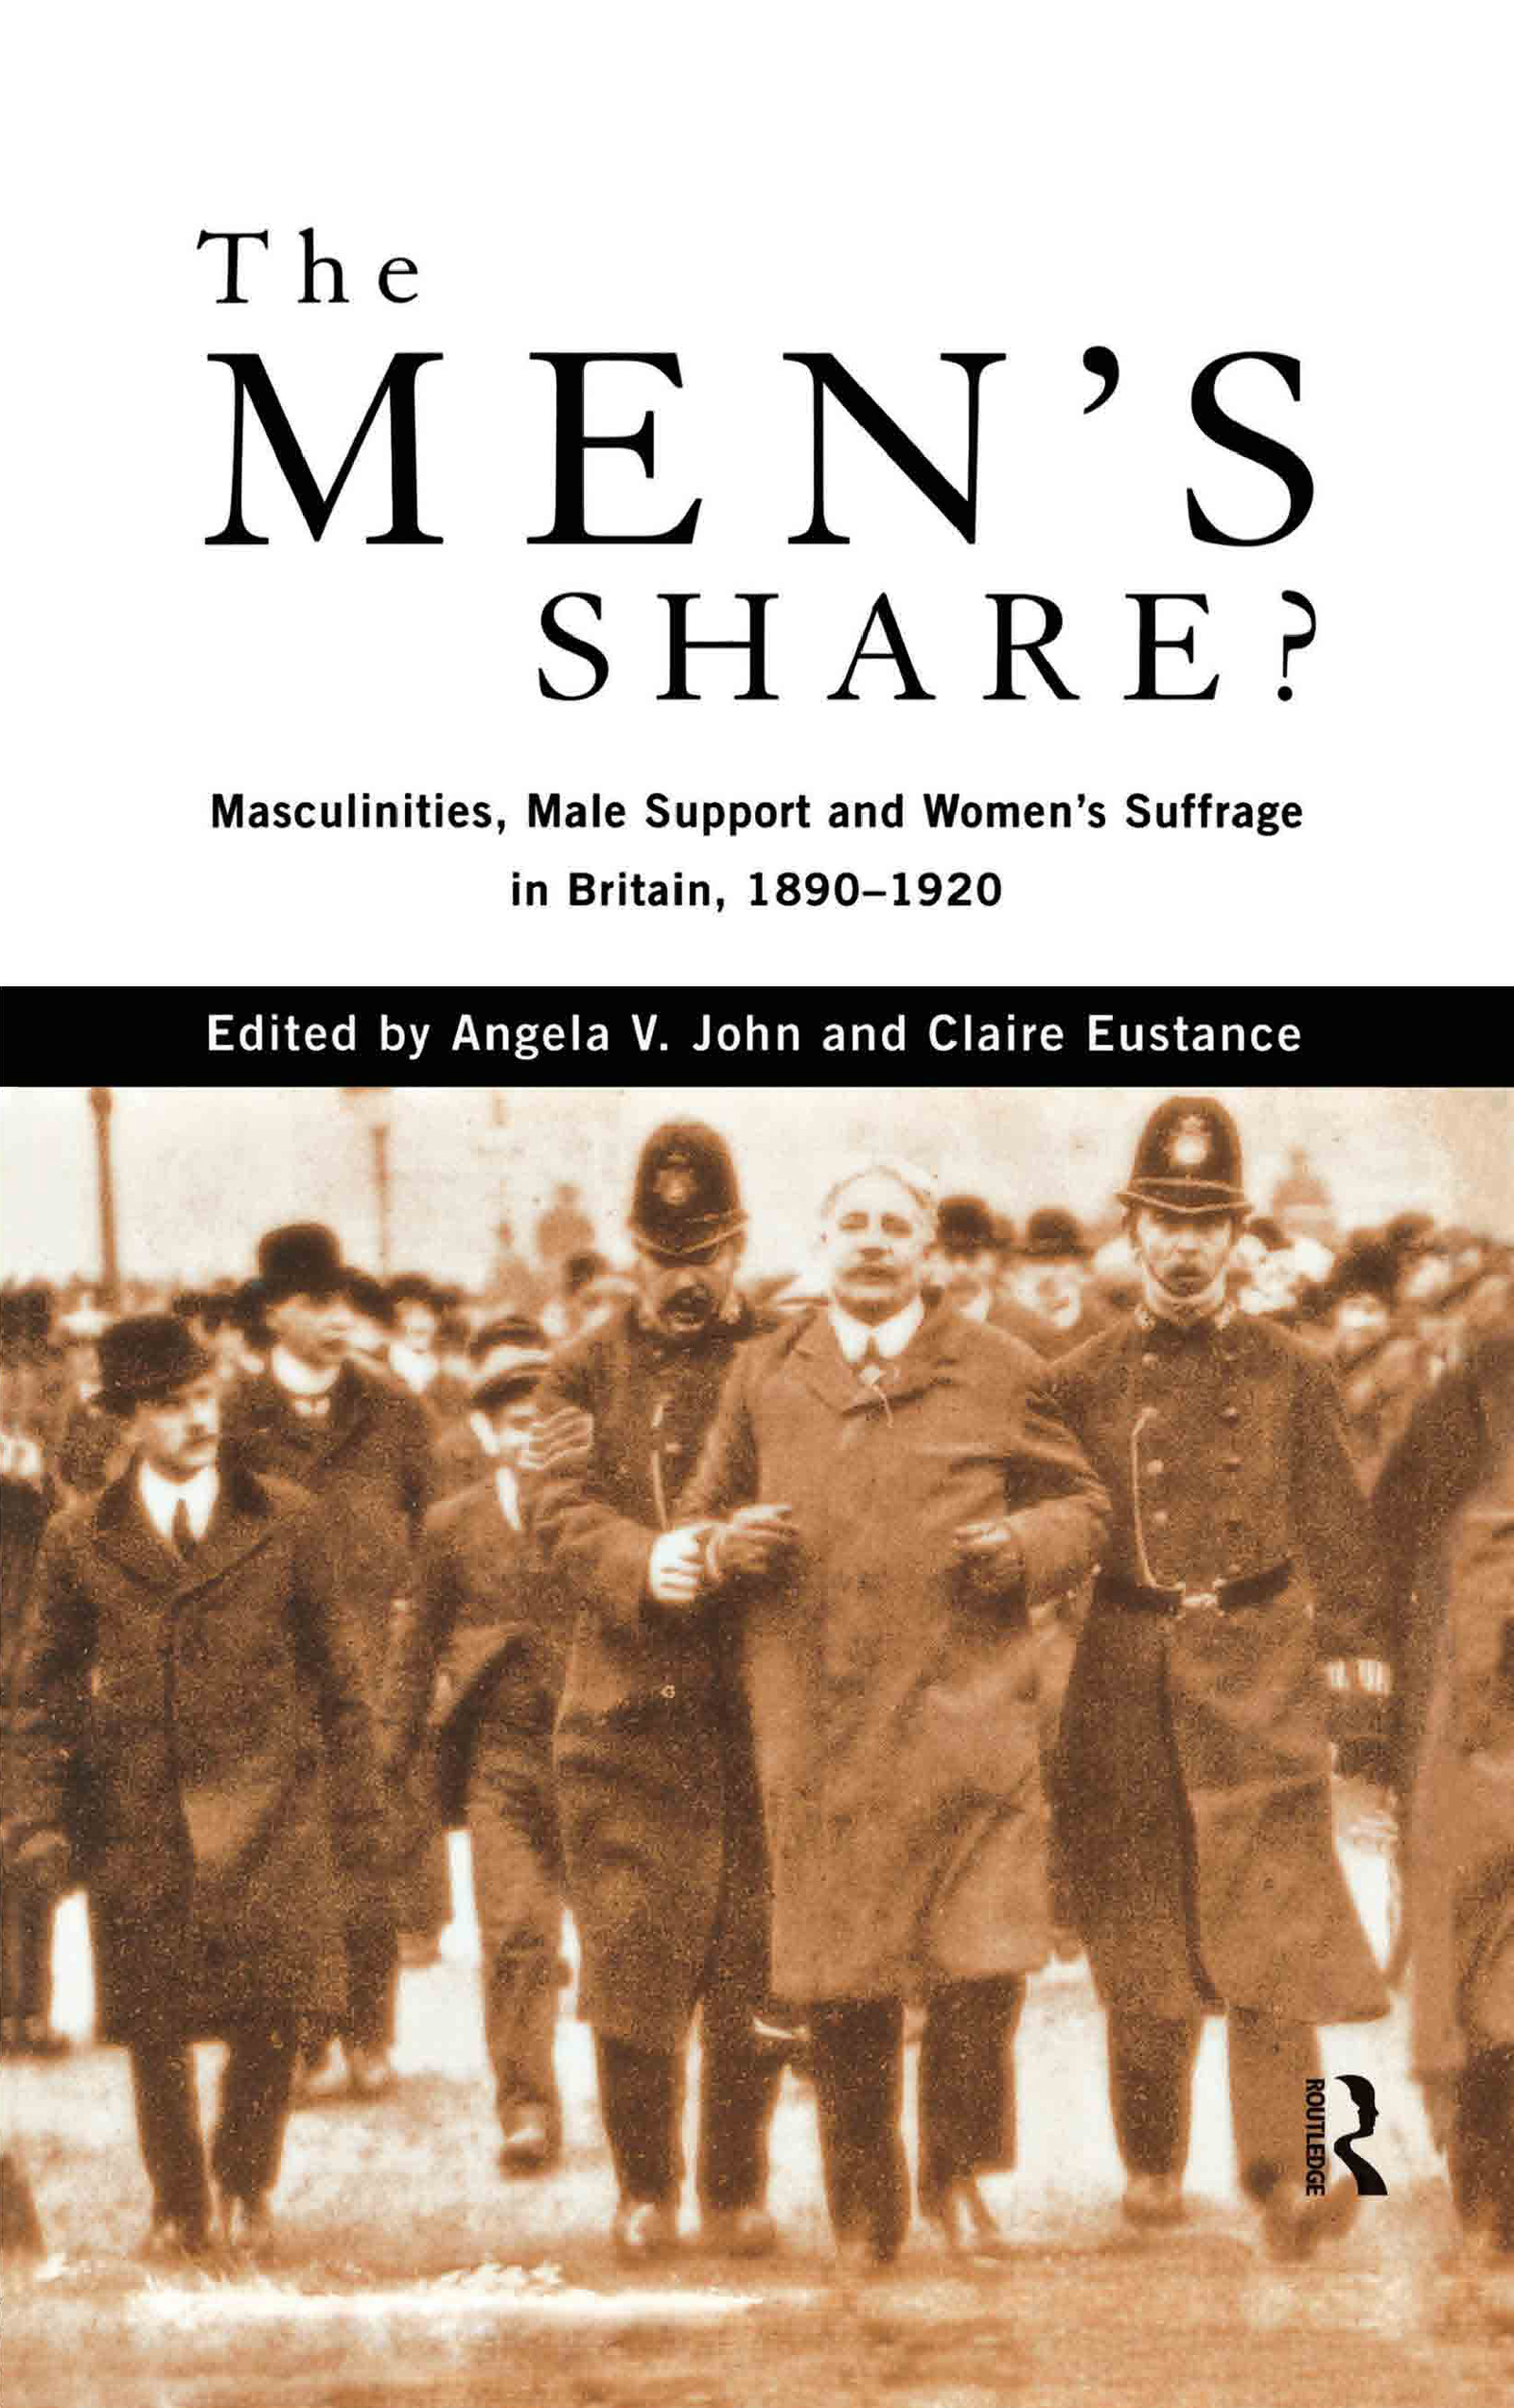 The Men's Share?: Masculinities, Male Support and Women's Suffrage in Britain, 1890-1920 (Hardback) book cover